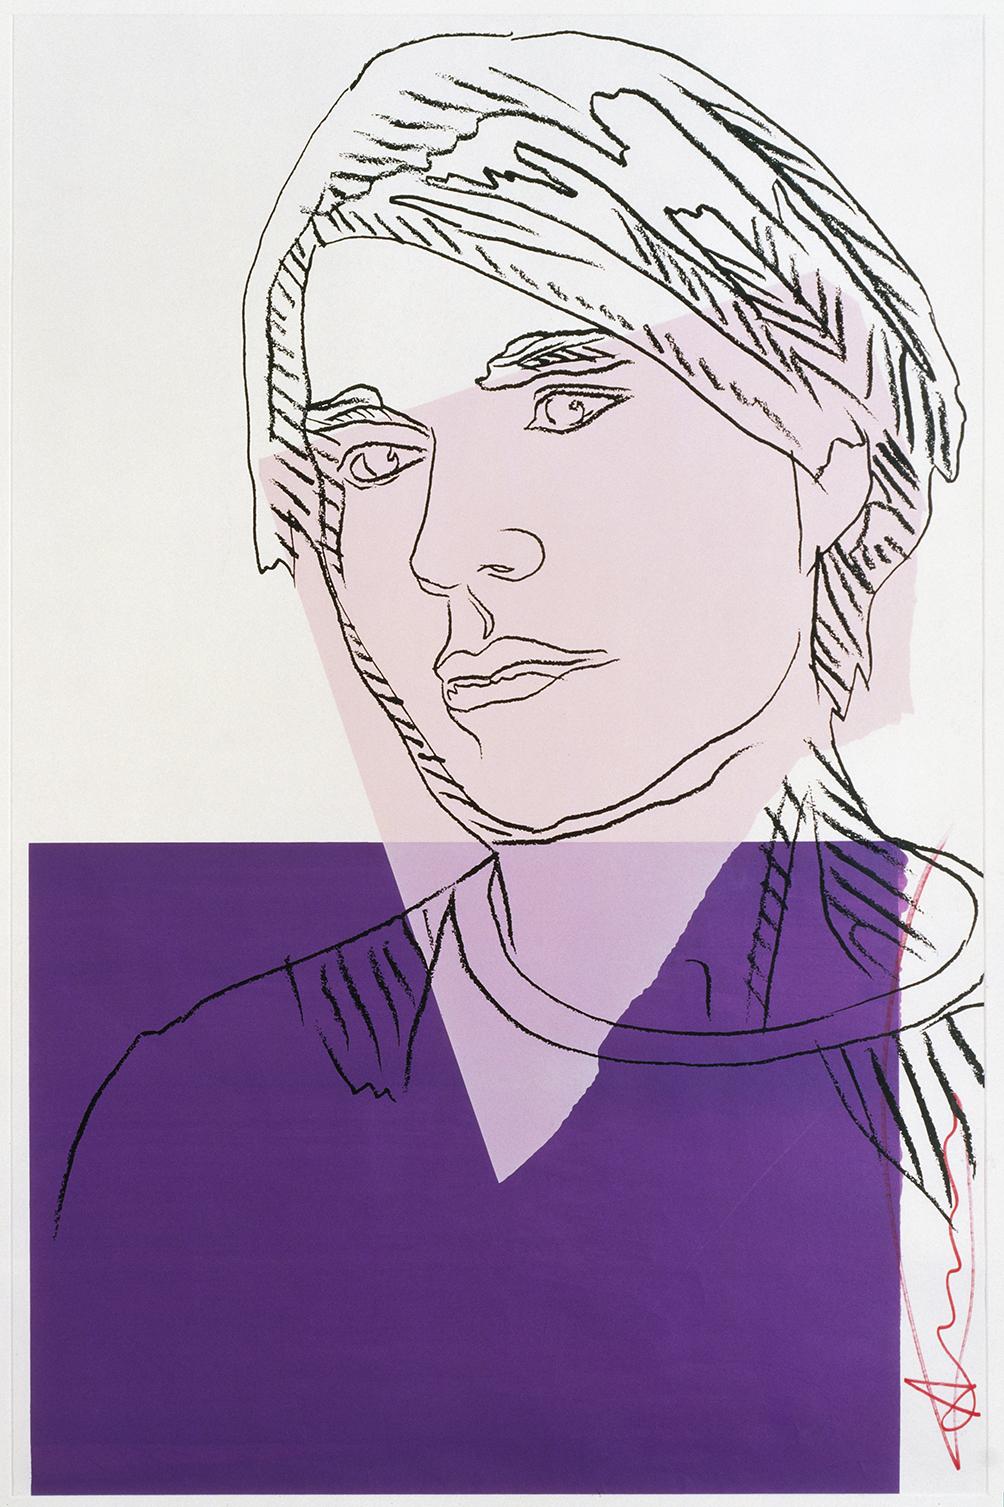 Self Portrait 1978 Andy Warhol The Andy Warhol Foundation For The Visual Arts Inc Dacsartimage 2018